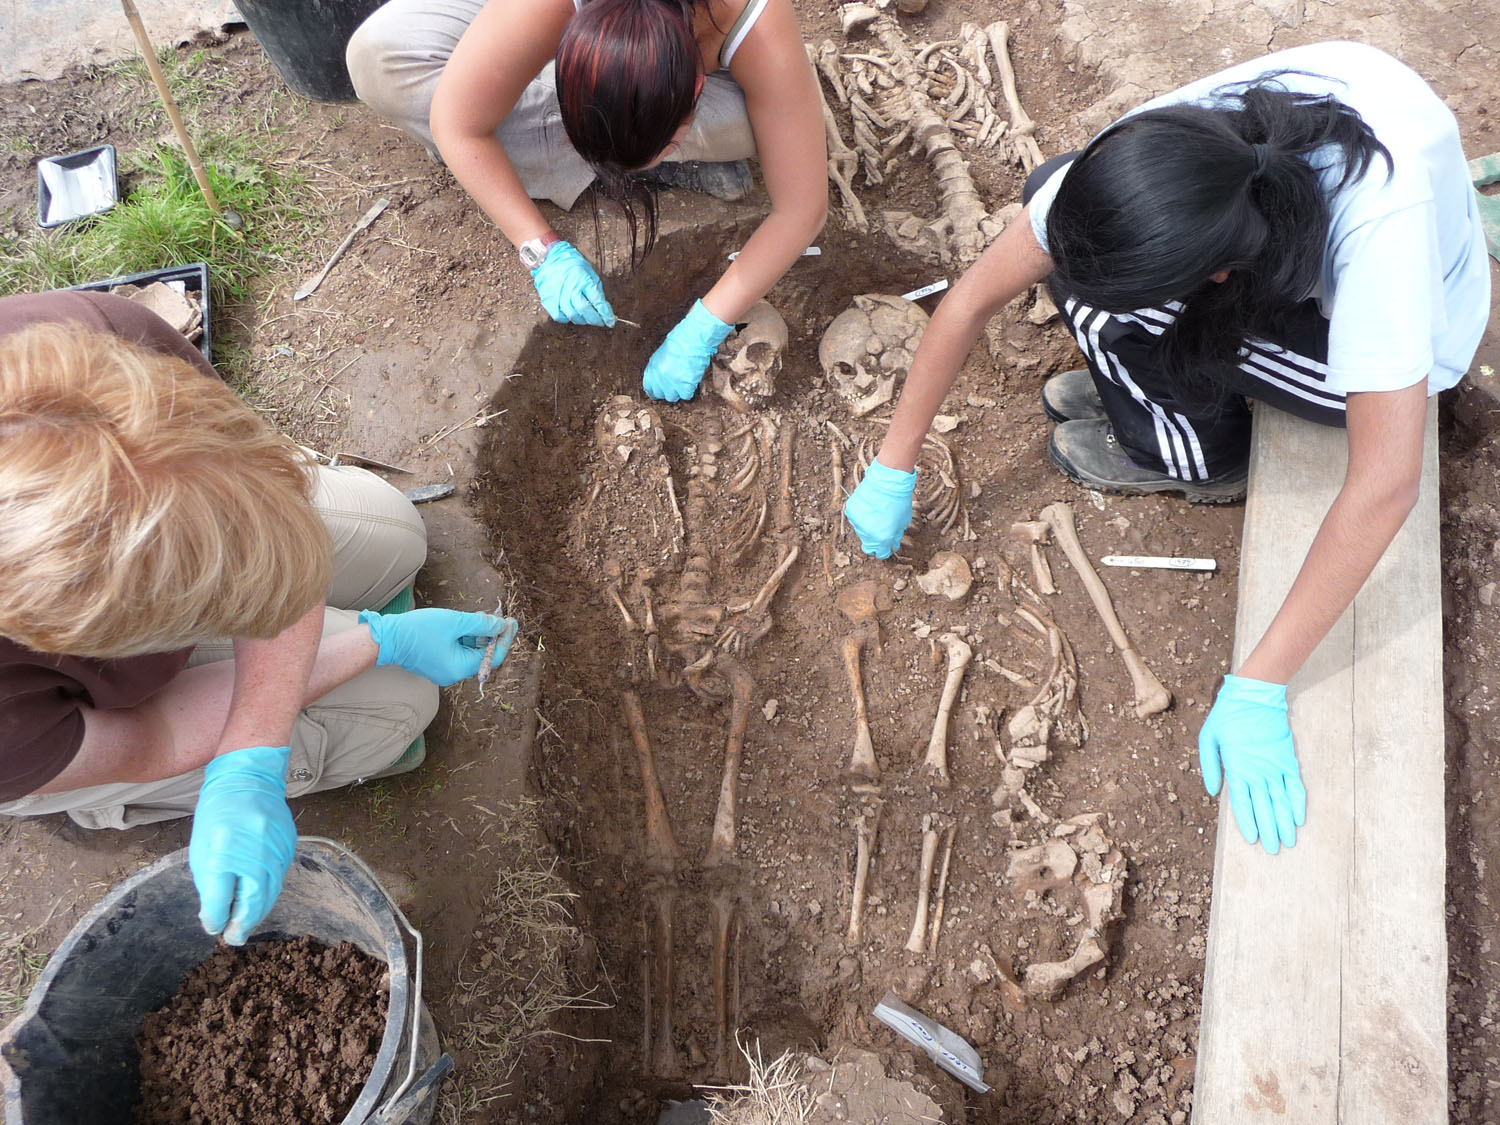 Steps in digging an archaeological site?